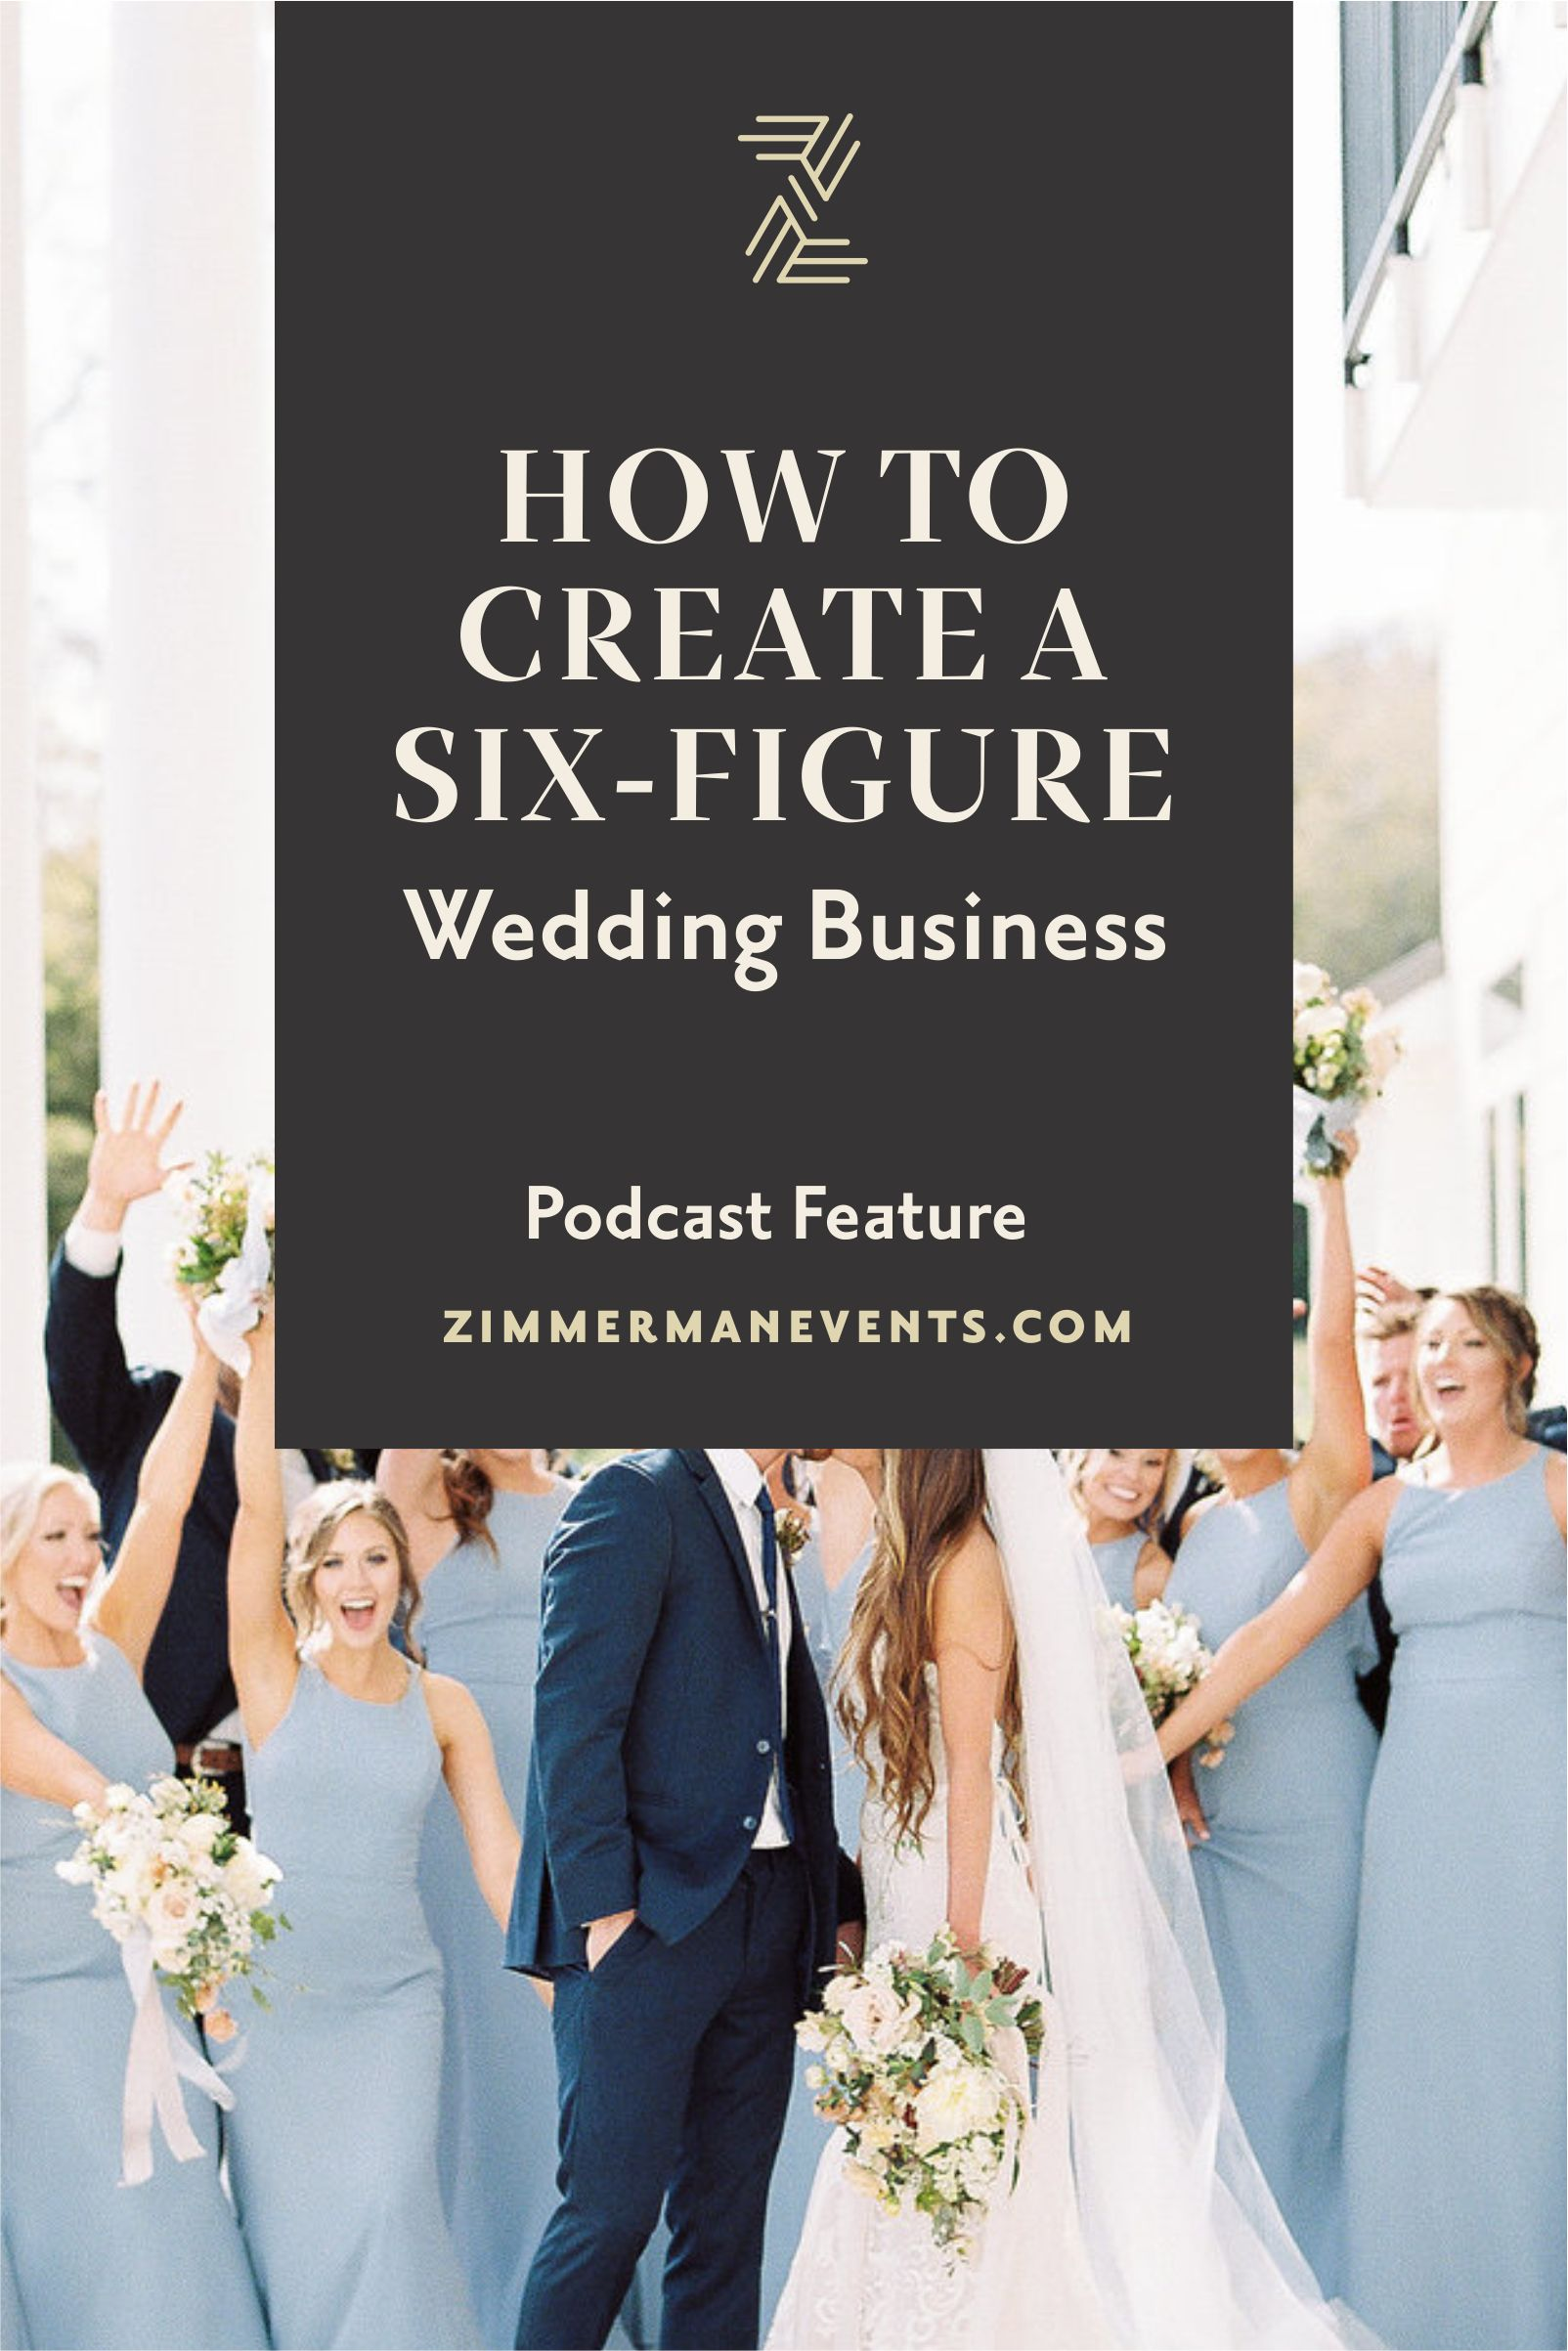 Bankruptcy To A Million Dollar Business Wings Of Inspired Business Podcast Arkansas Wedding Planner Florist Education Zimmerman Wedding Business Wedding Floral Design Business